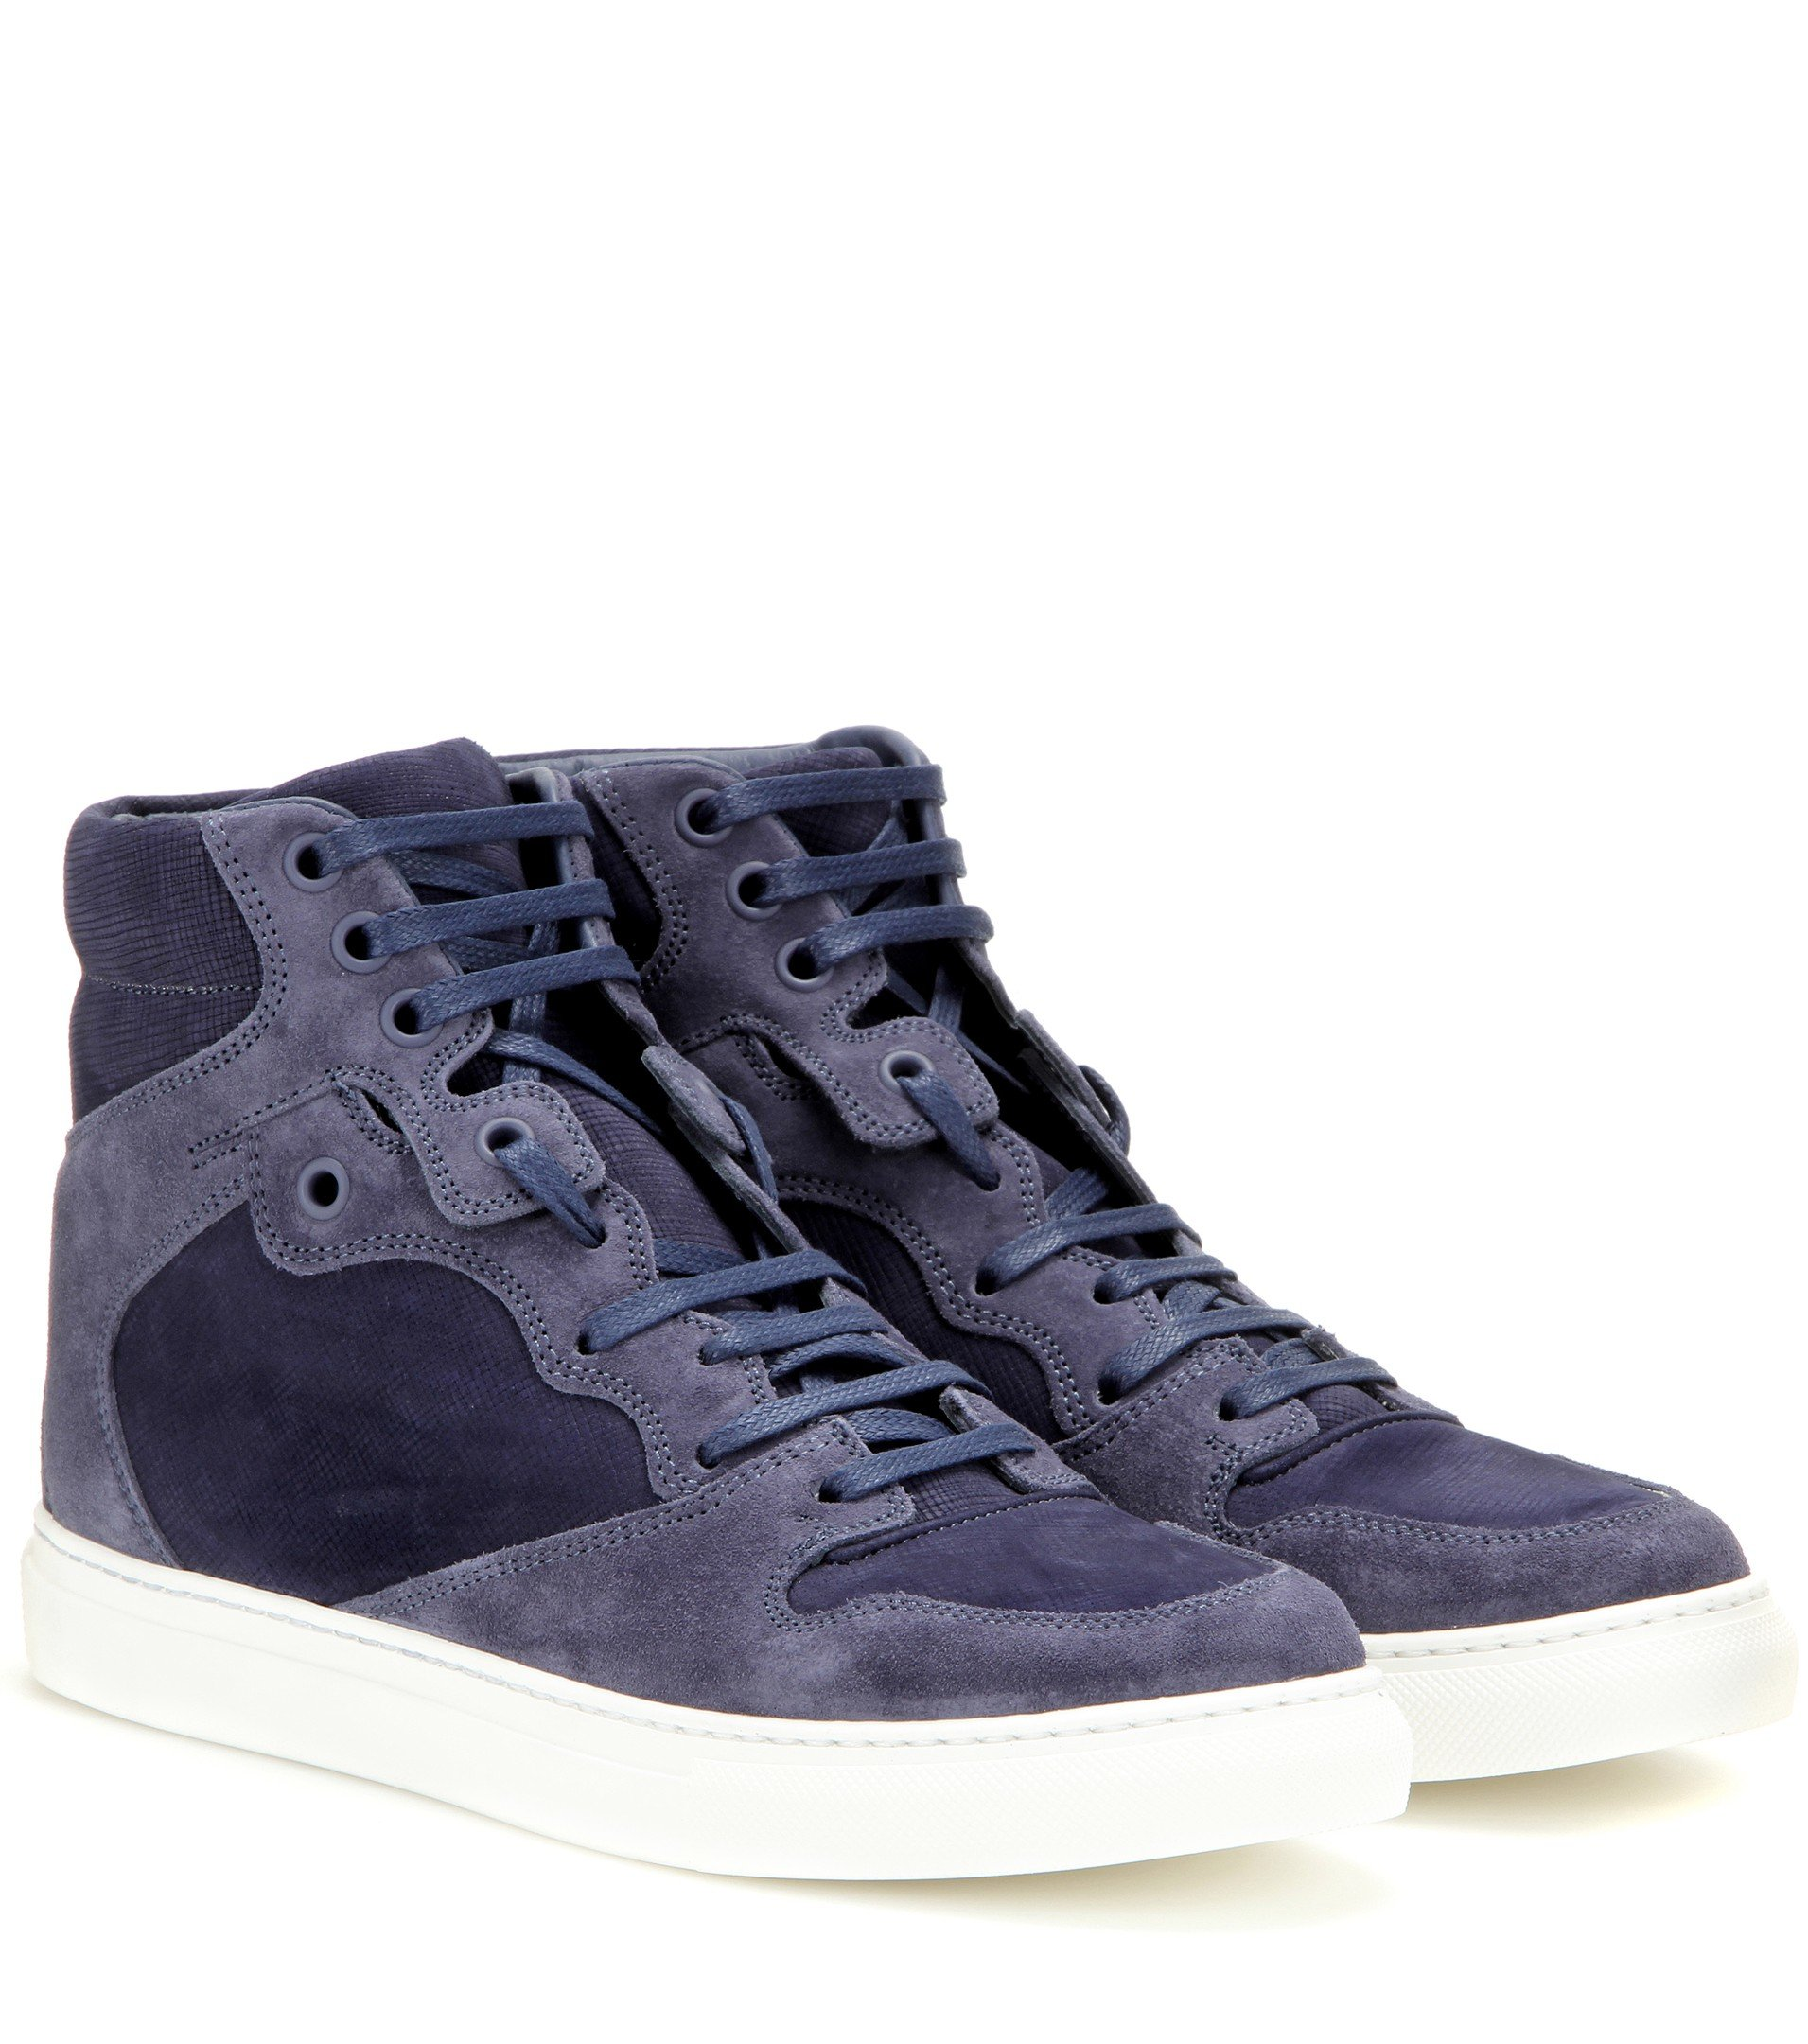 lyst balenciaga suede high top sneakers in blue. Black Bedroom Furniture Sets. Home Design Ideas